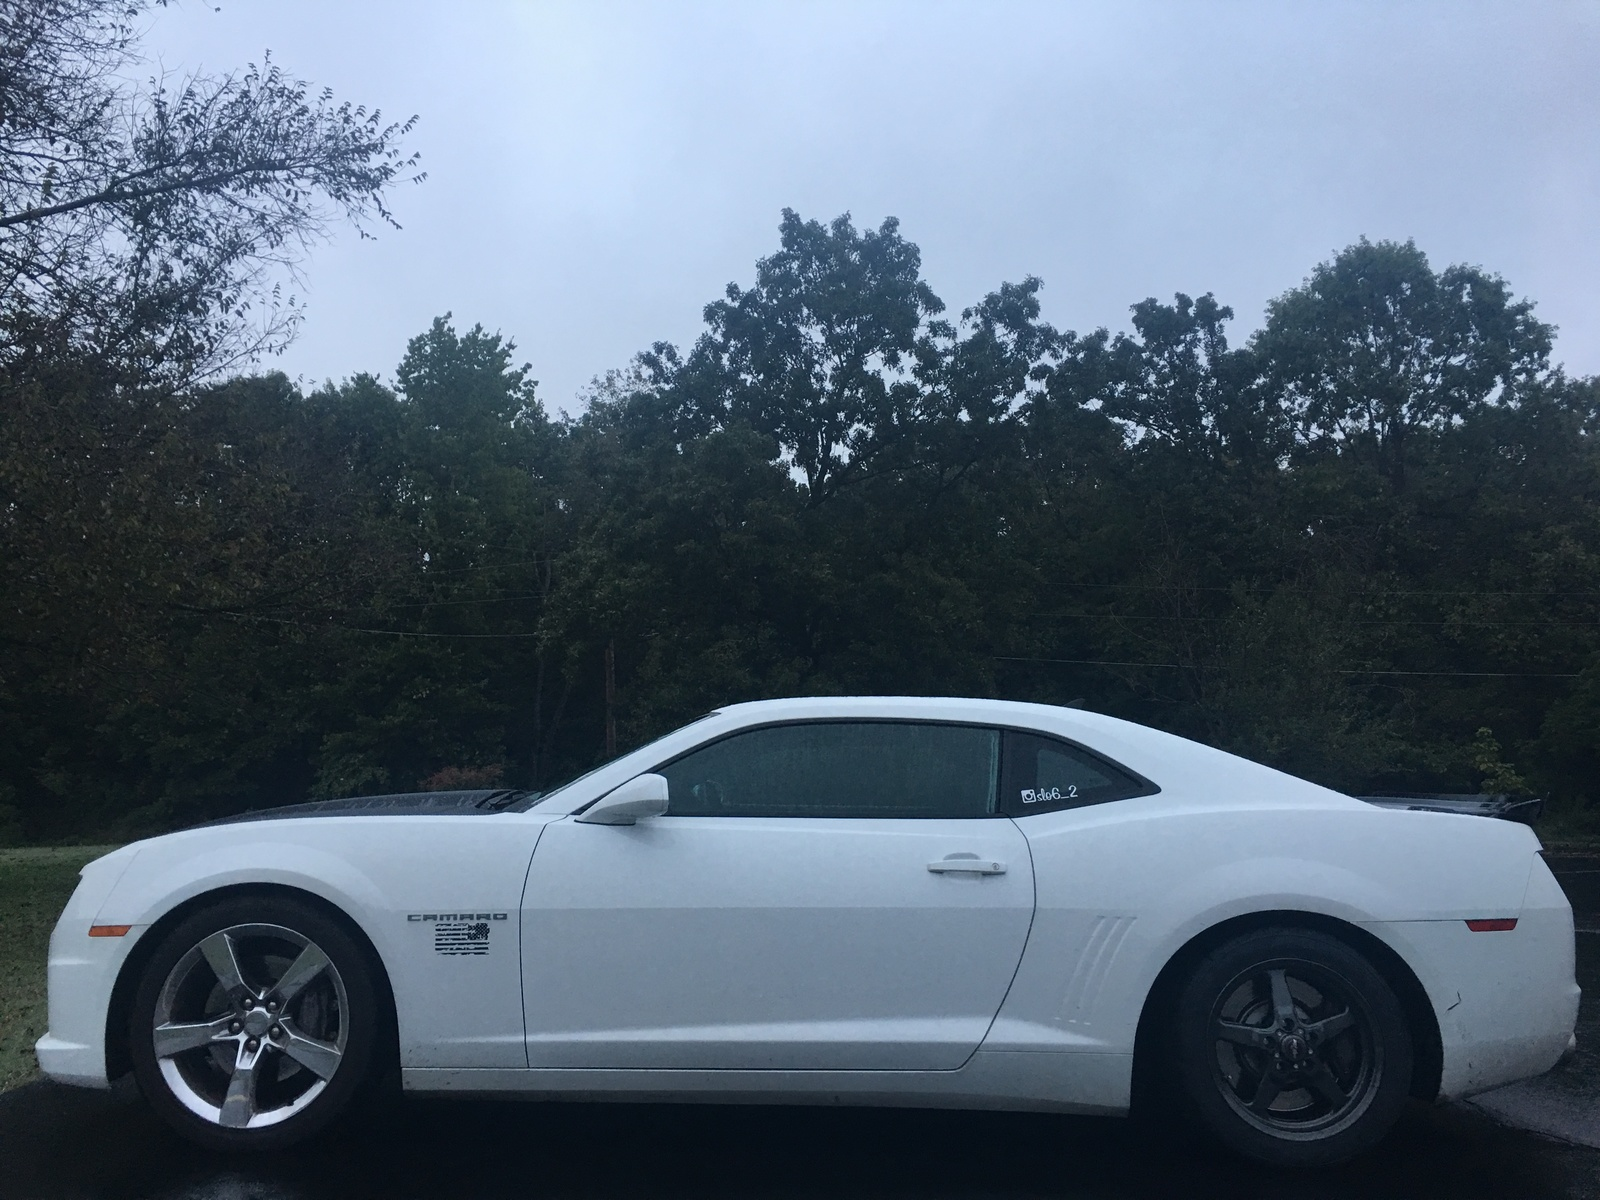 White 2010 Chevrolet Camaro 2SS/RS